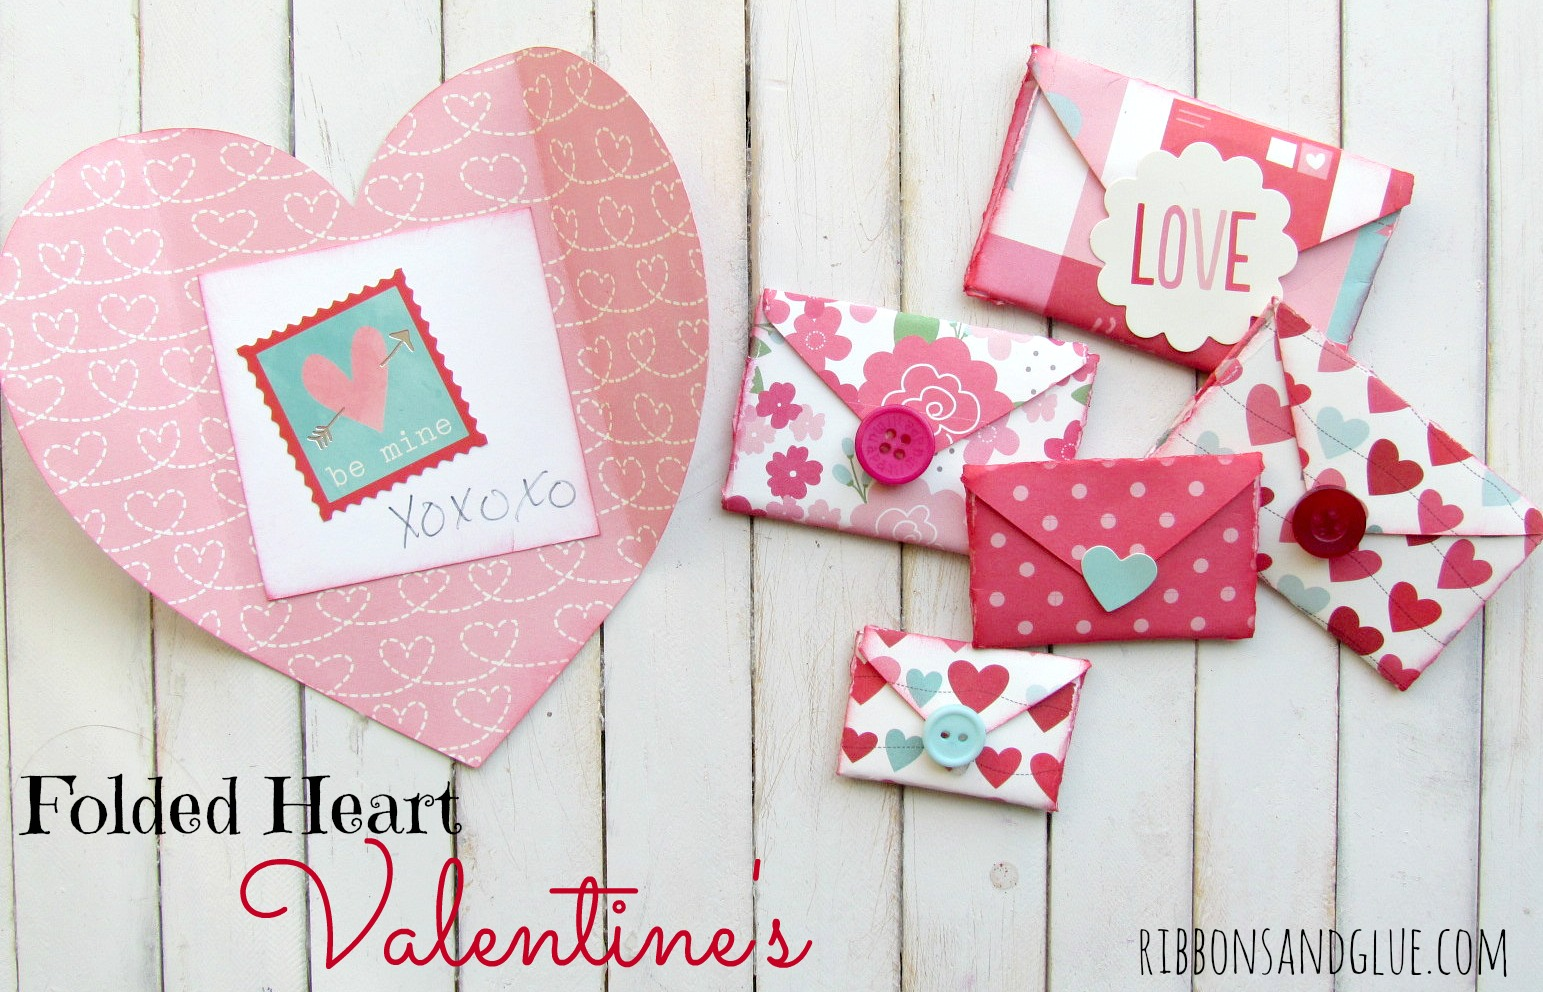 Folded Heart Valentine's